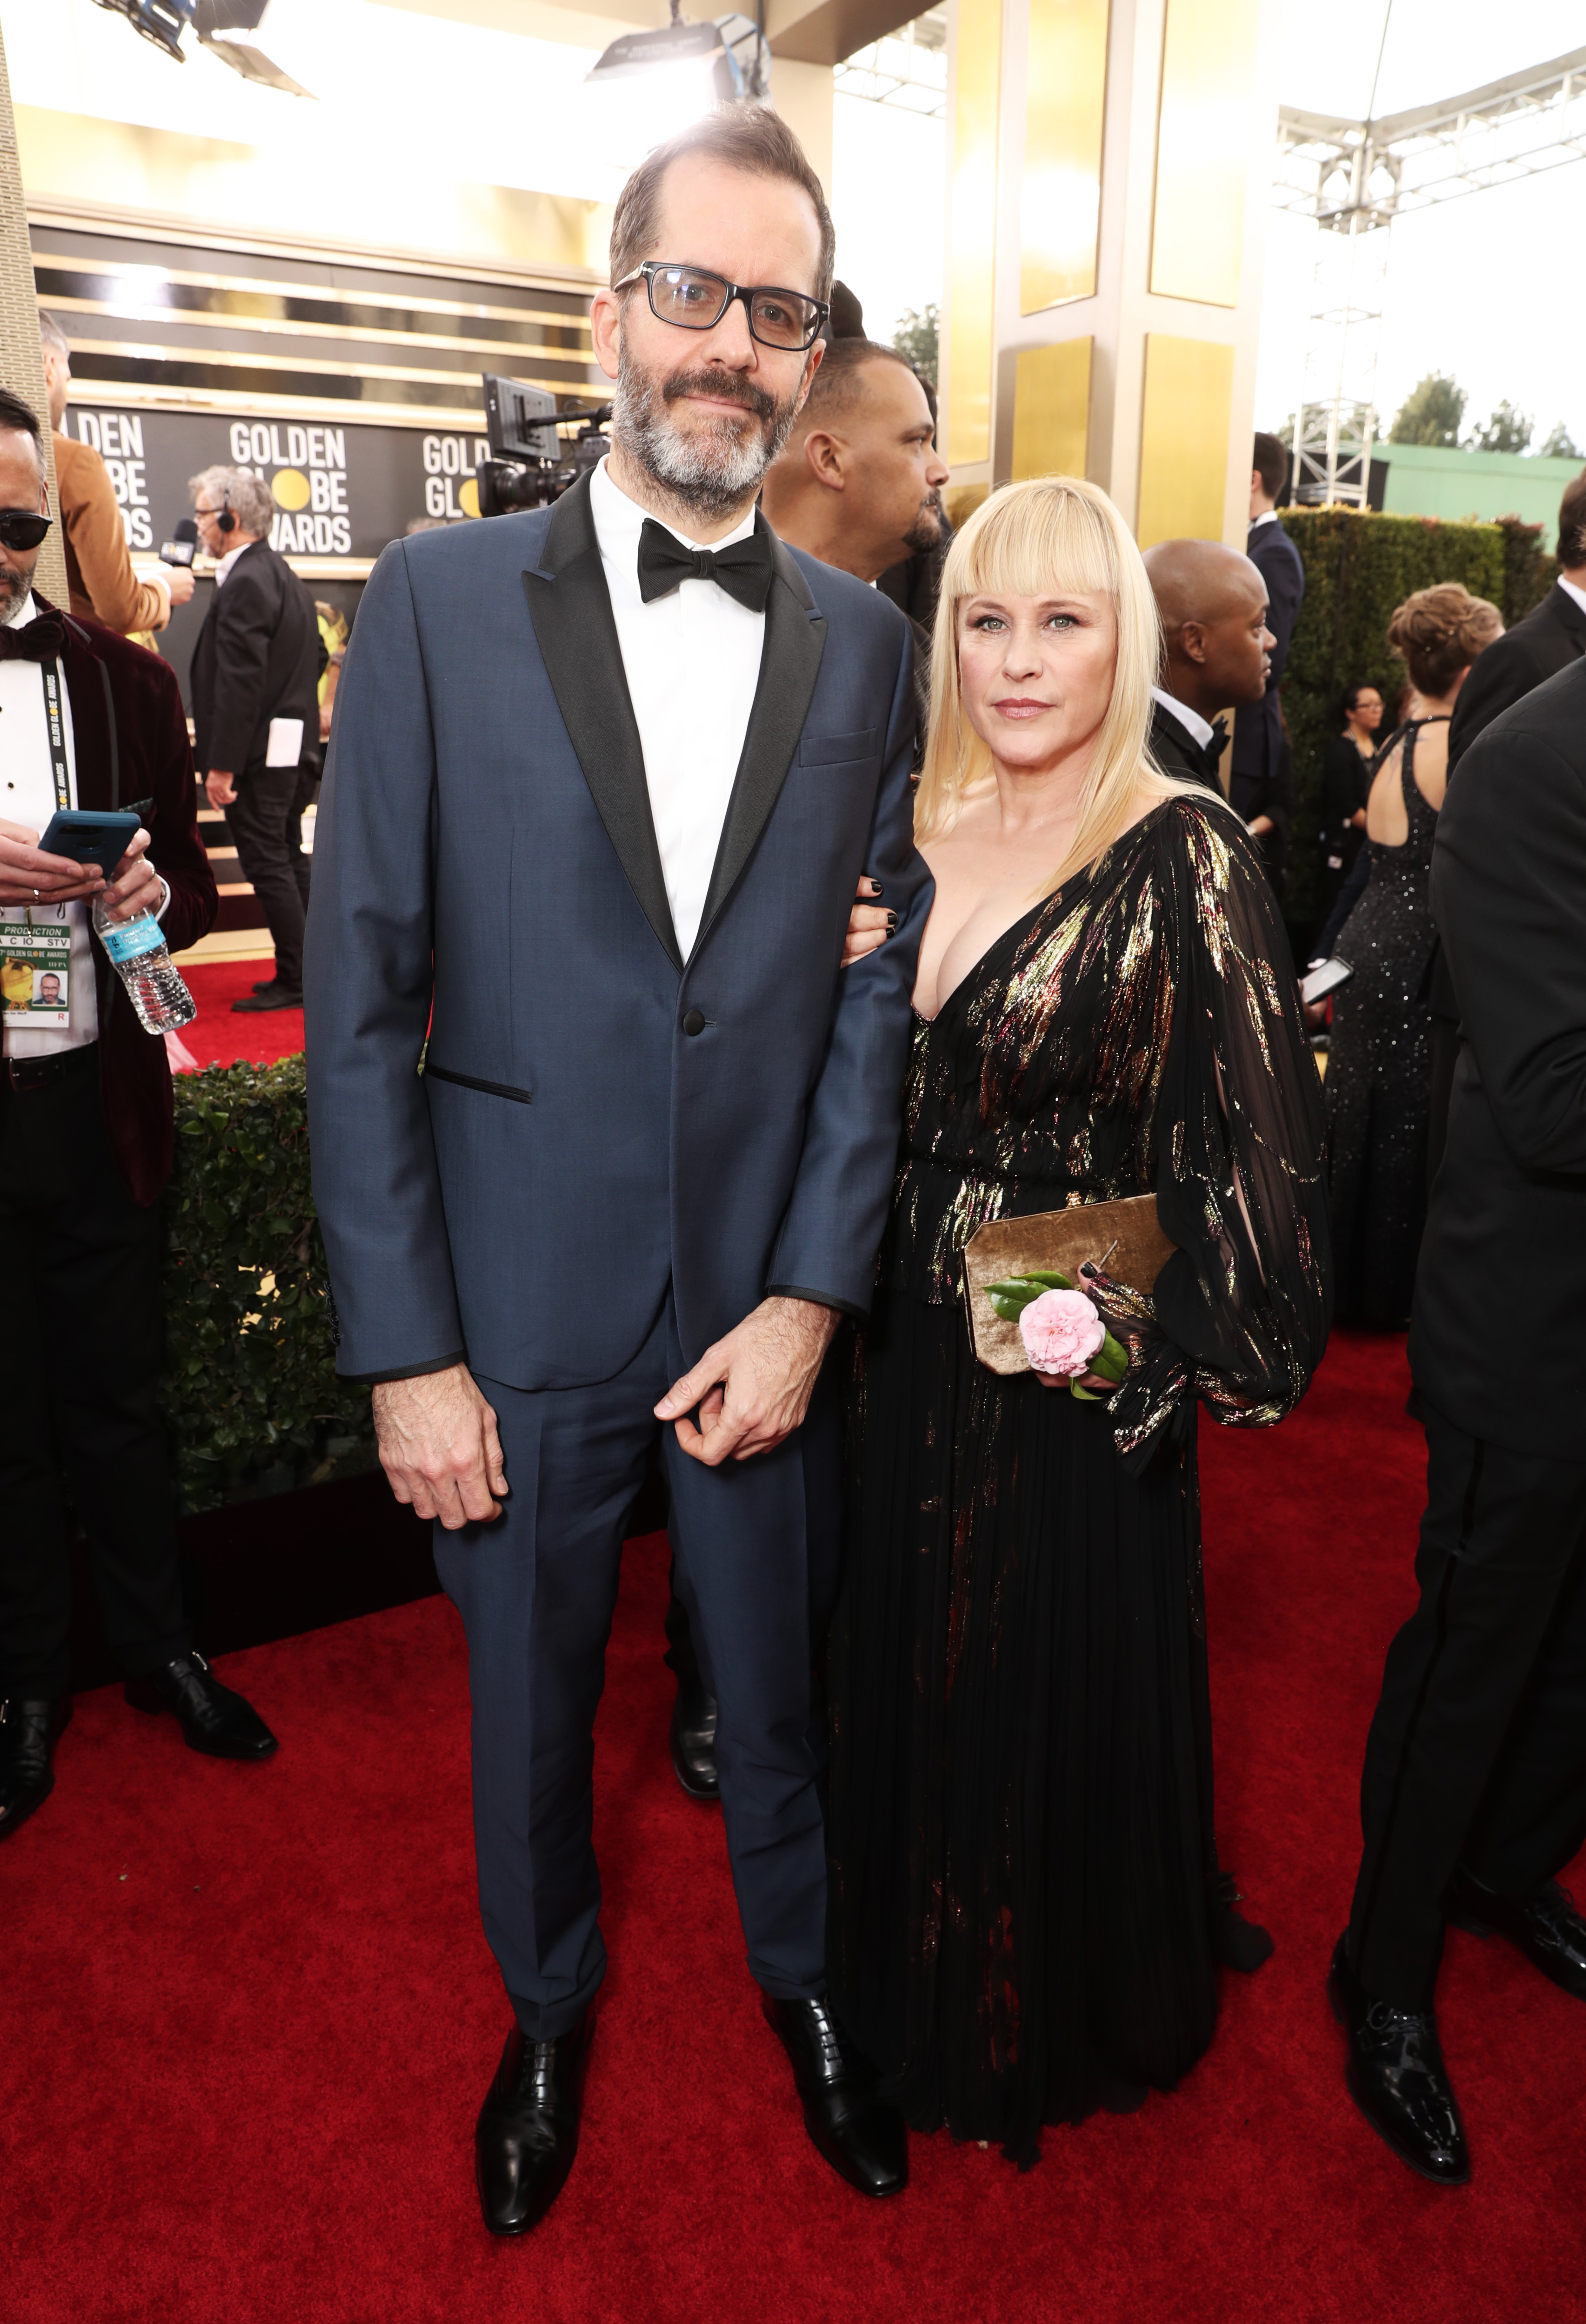 BEVERLY HILLS, CALIFORNIA - JANUARY 05: 77th ANNUAL GOLDEN GLOBE AWARDS -- Pictured: (l-r) Eric White and Patricia Arquette arrive to the 77th Annual Golden Globe Awards held at the Beverly Hilton Hotel on January 5, 2020. -- (Photo by: Todd Williamson/NBC/NBCU Photo Bank via Getty Images)